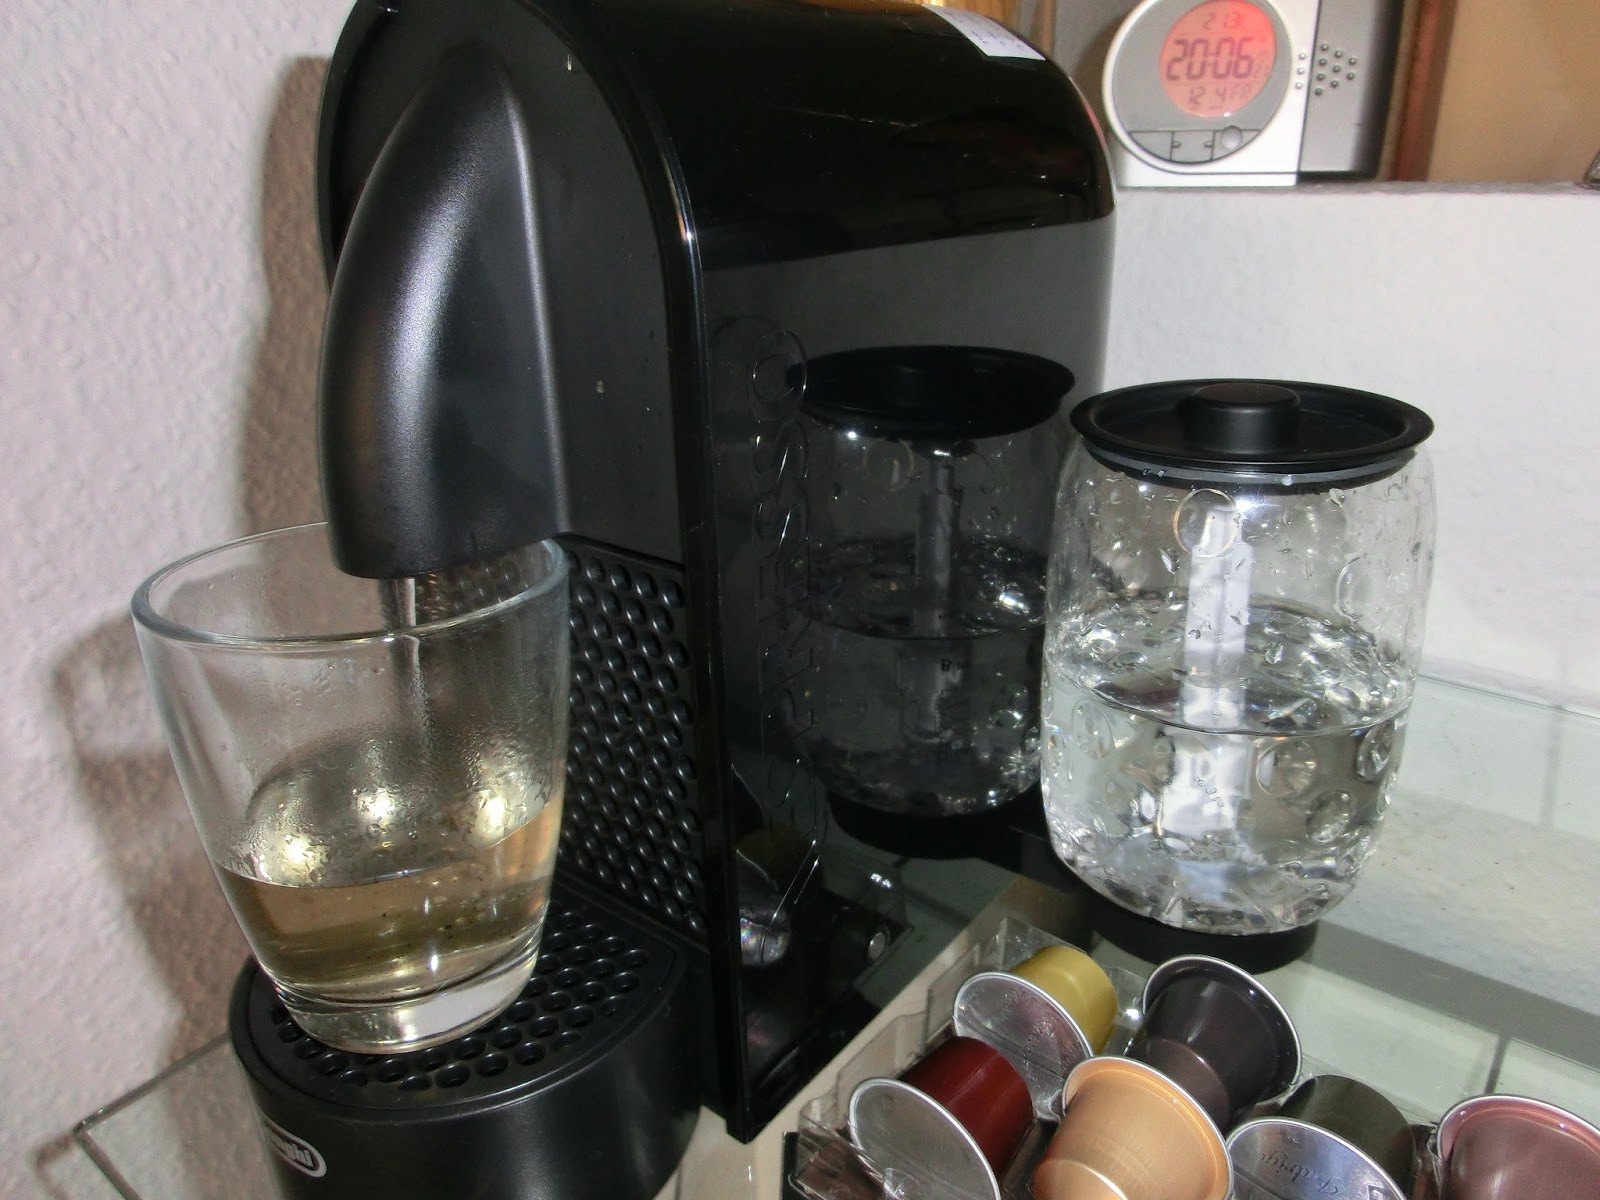 Delonghi Magnifica Coffee Maker Leaking Water : Werkbank0850: Delonghi Nespresso U: Water tank DIY repair